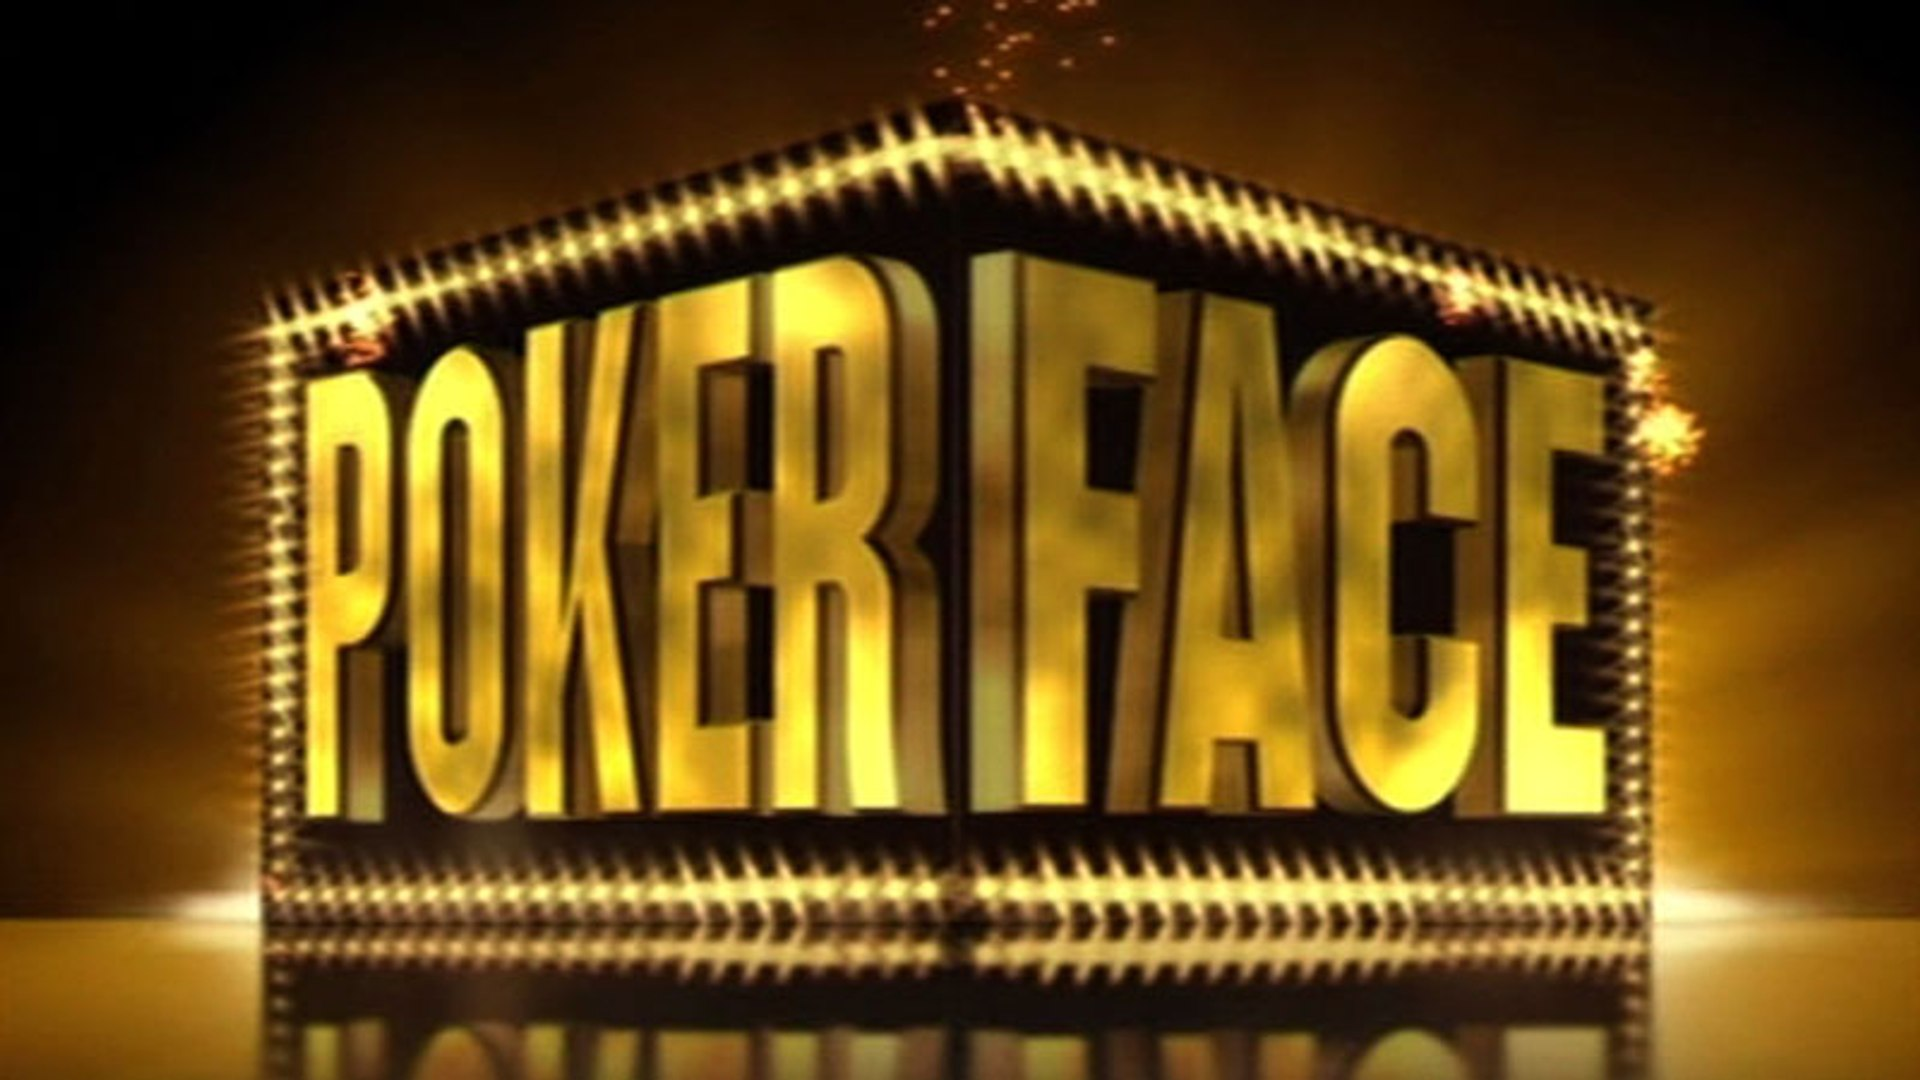 Pokerface Season 1 Episode 1 Video Dailymotion